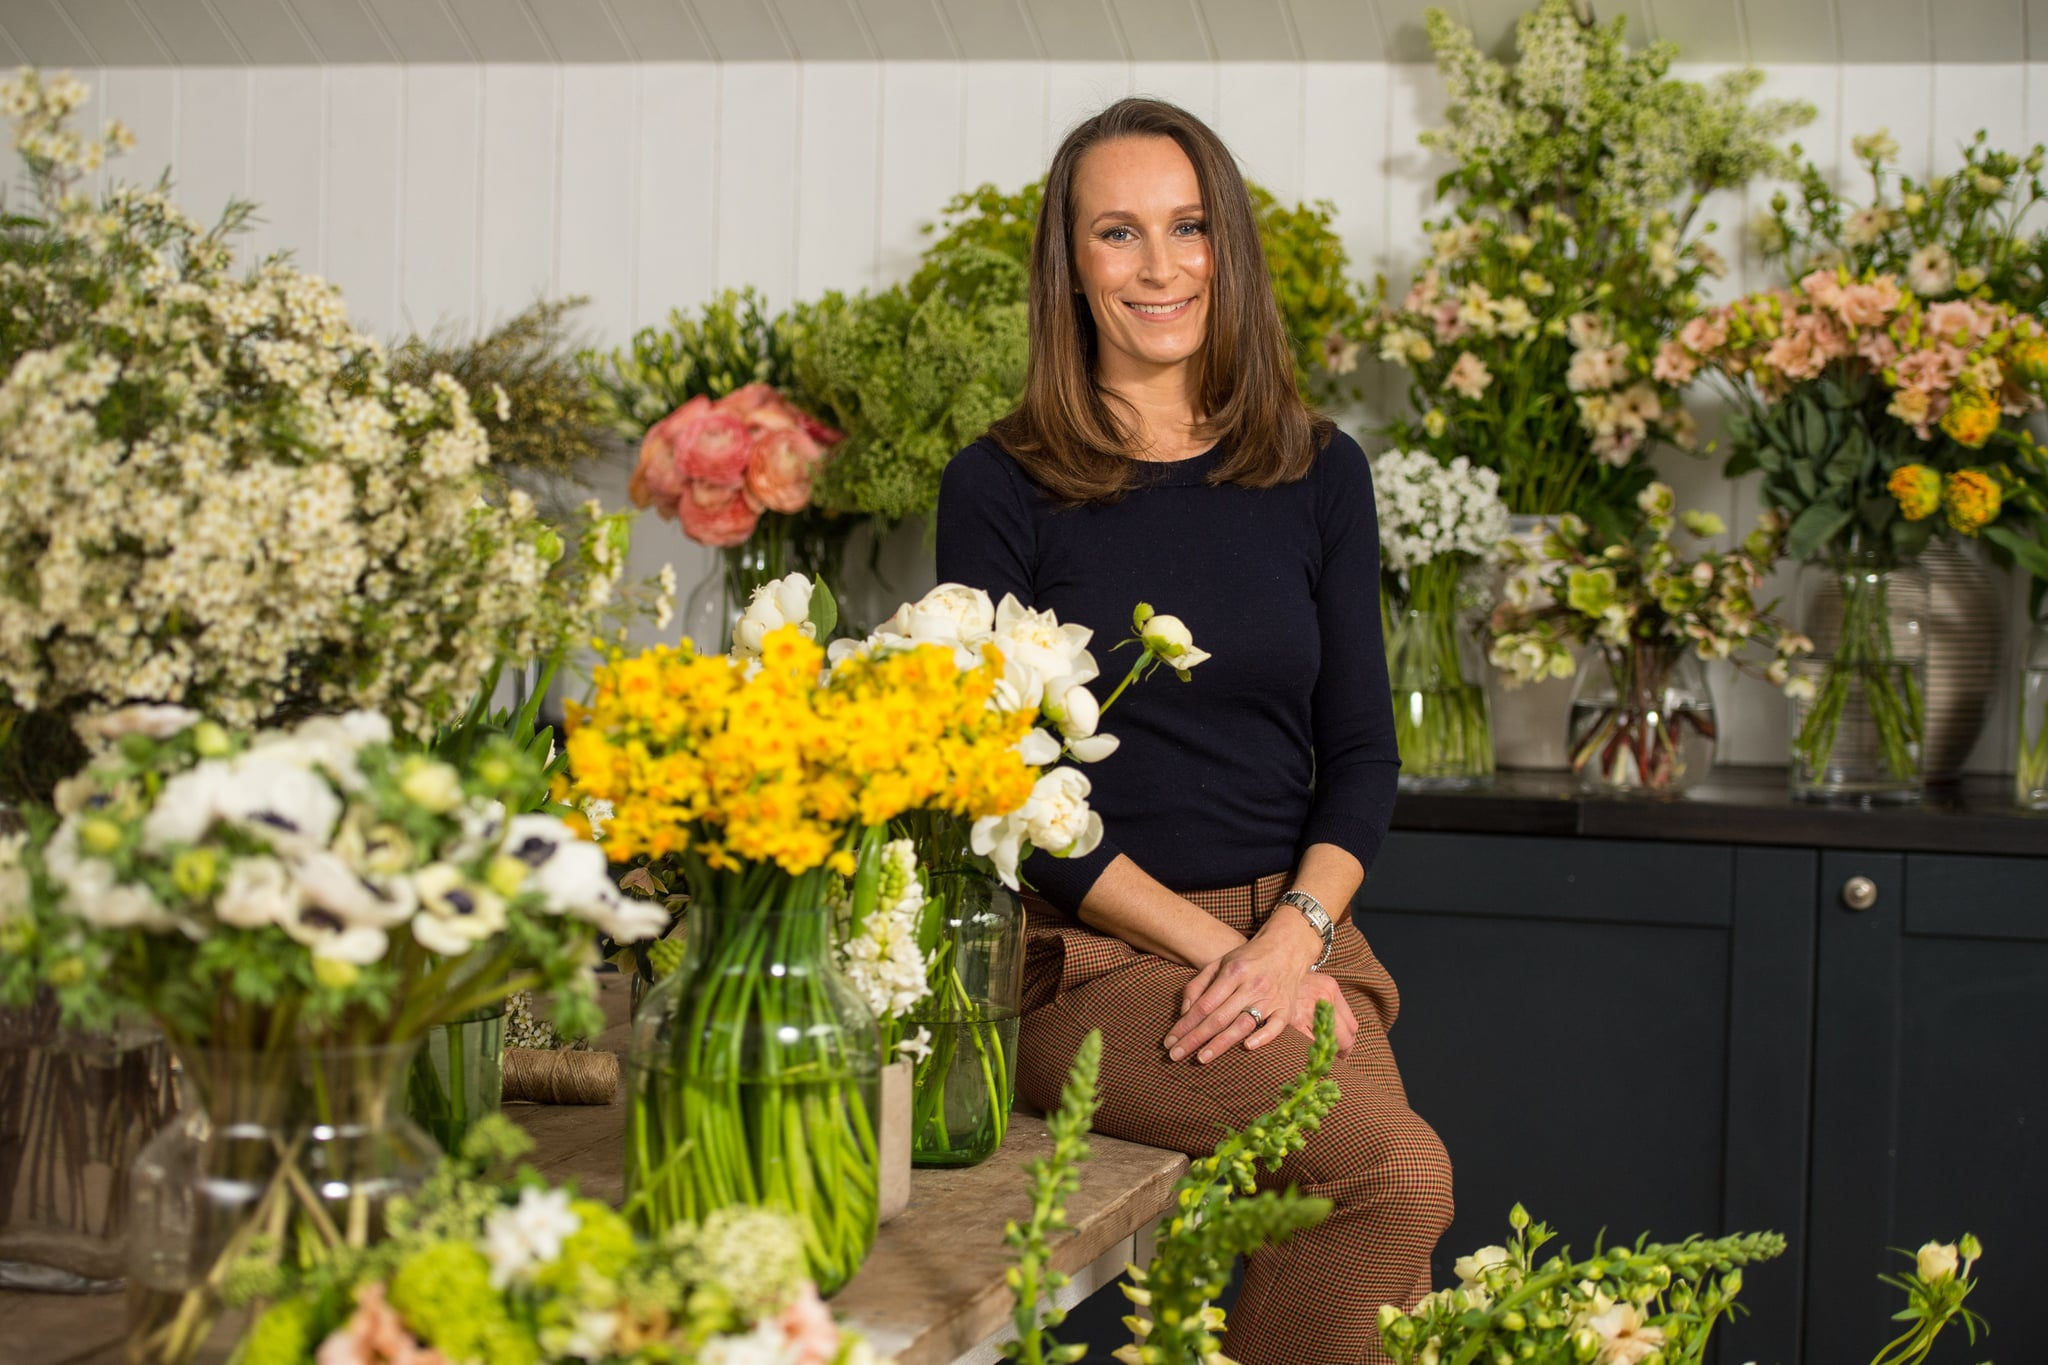 Florist Philippa Craddock poses for a photograph in her studio in London on March 29, 2018.Philippa Craddock has been chosen to create the church flowers for the wedding of Britain's Prince Harry and Harry's fiancee, US actress Meghan Markle in St George's Chapel and for St George's Hall. / AFP PHOTO / POOL / Dominic Lipinski        (Photo credit should read DOMINIC LIPINSKI/AFP/Getty Images)